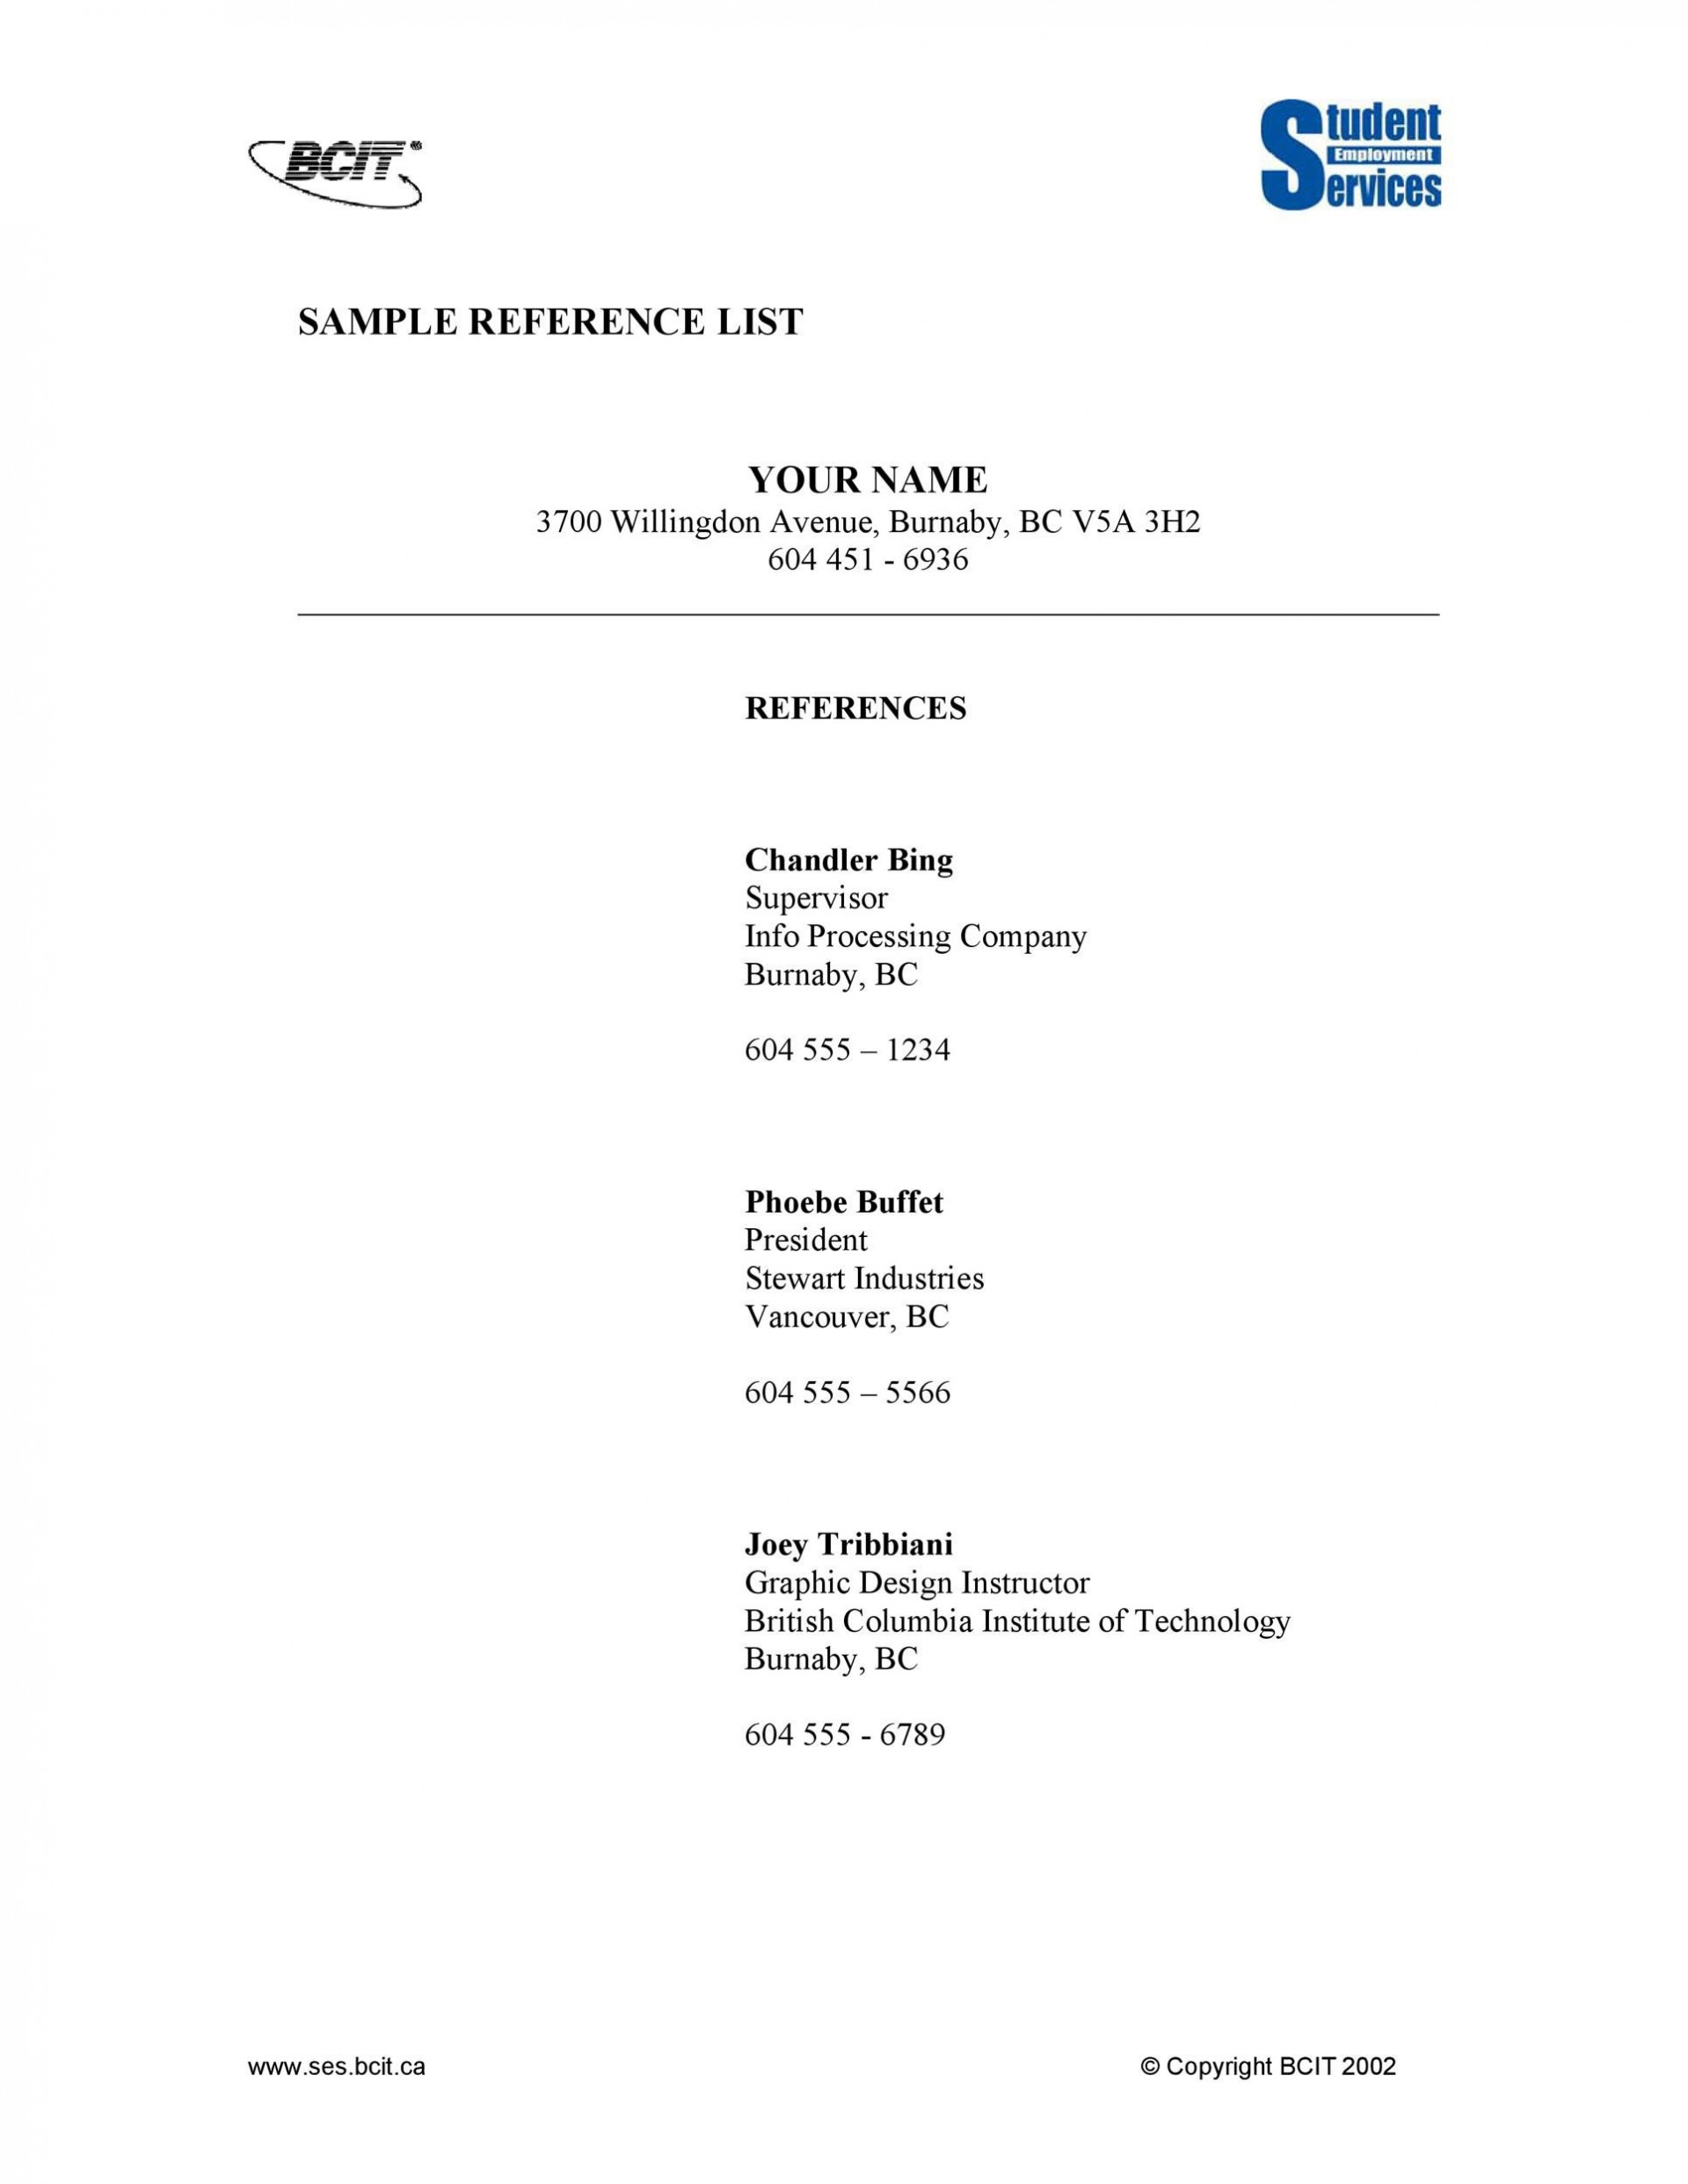 006 Unique List Of Reference Template Picture  Employment Format Professional Free1920